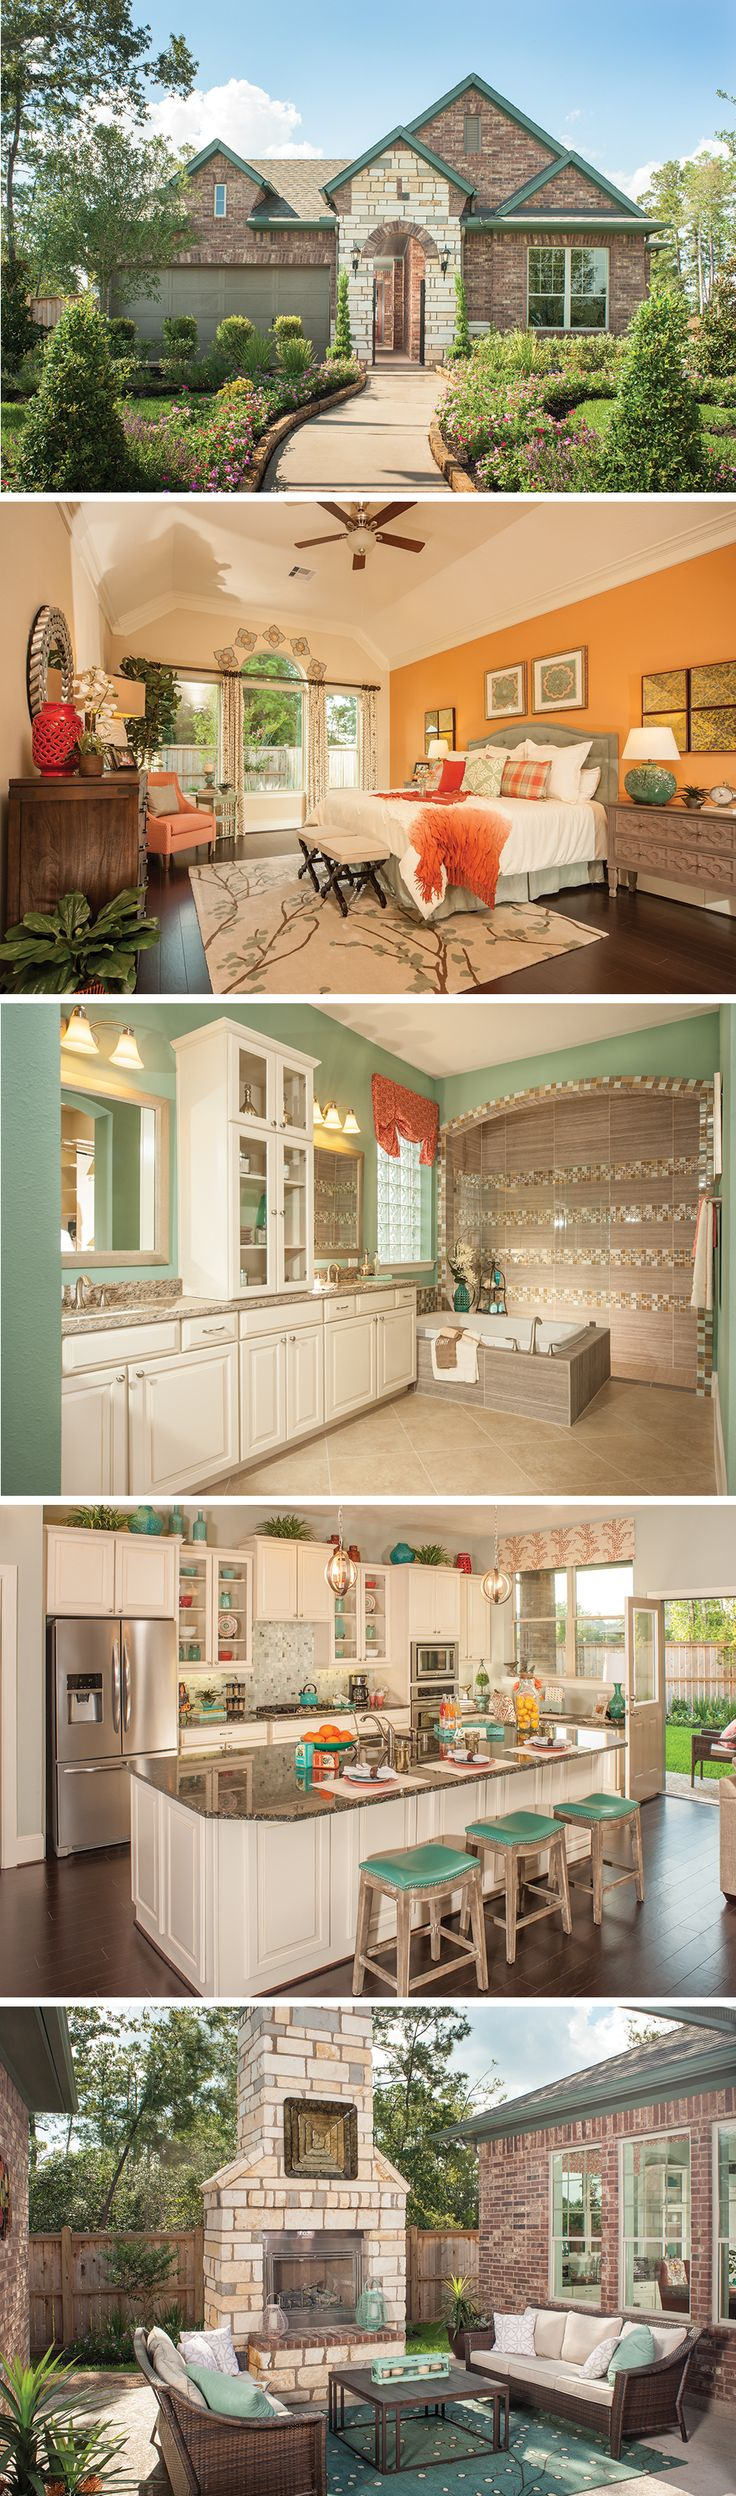 The Windson by David Weekley Homes in The Falls - Sundance Lake is a 3 bedroom, 2 bathroom floorplan that features a large owners retreat with tray ceilings, an open family room and kitchen layout and a private courtyard with a fireplace. Custom home upgrades include a fireplace in the family room, an extended owners retreat or a cover over the courtyard.